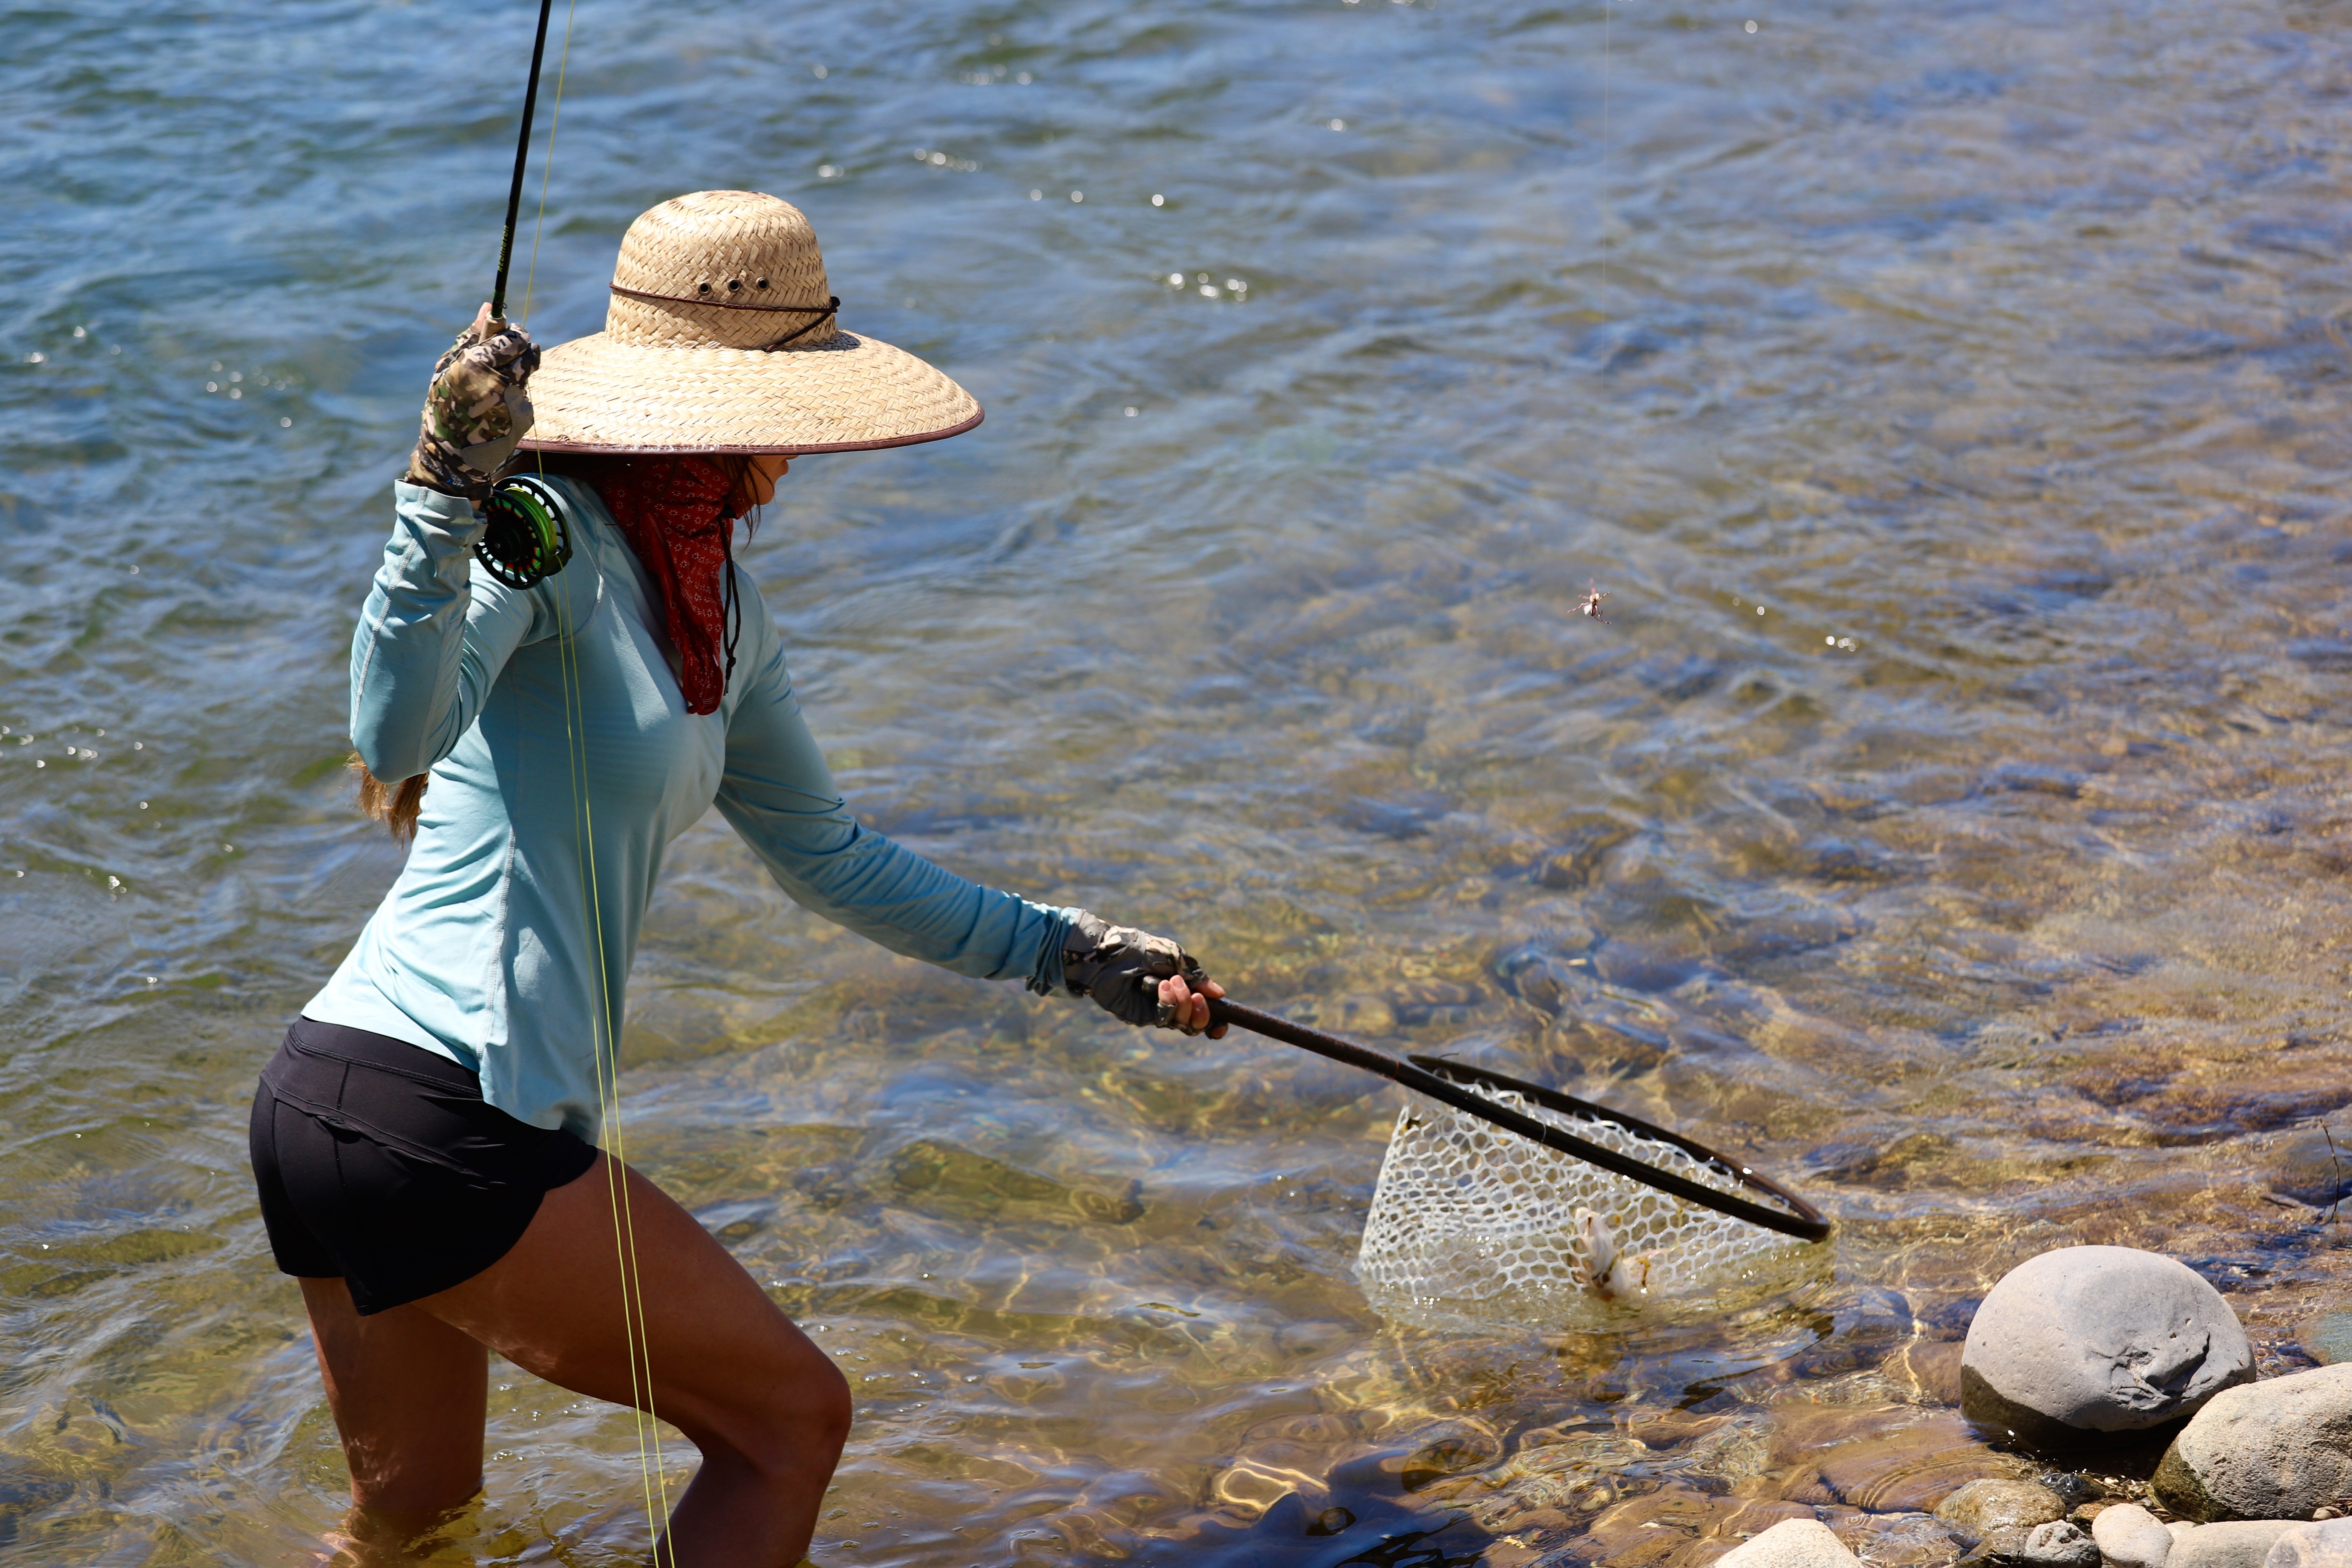 Woman fly fishing landing a fish on the Yuba River in a hat